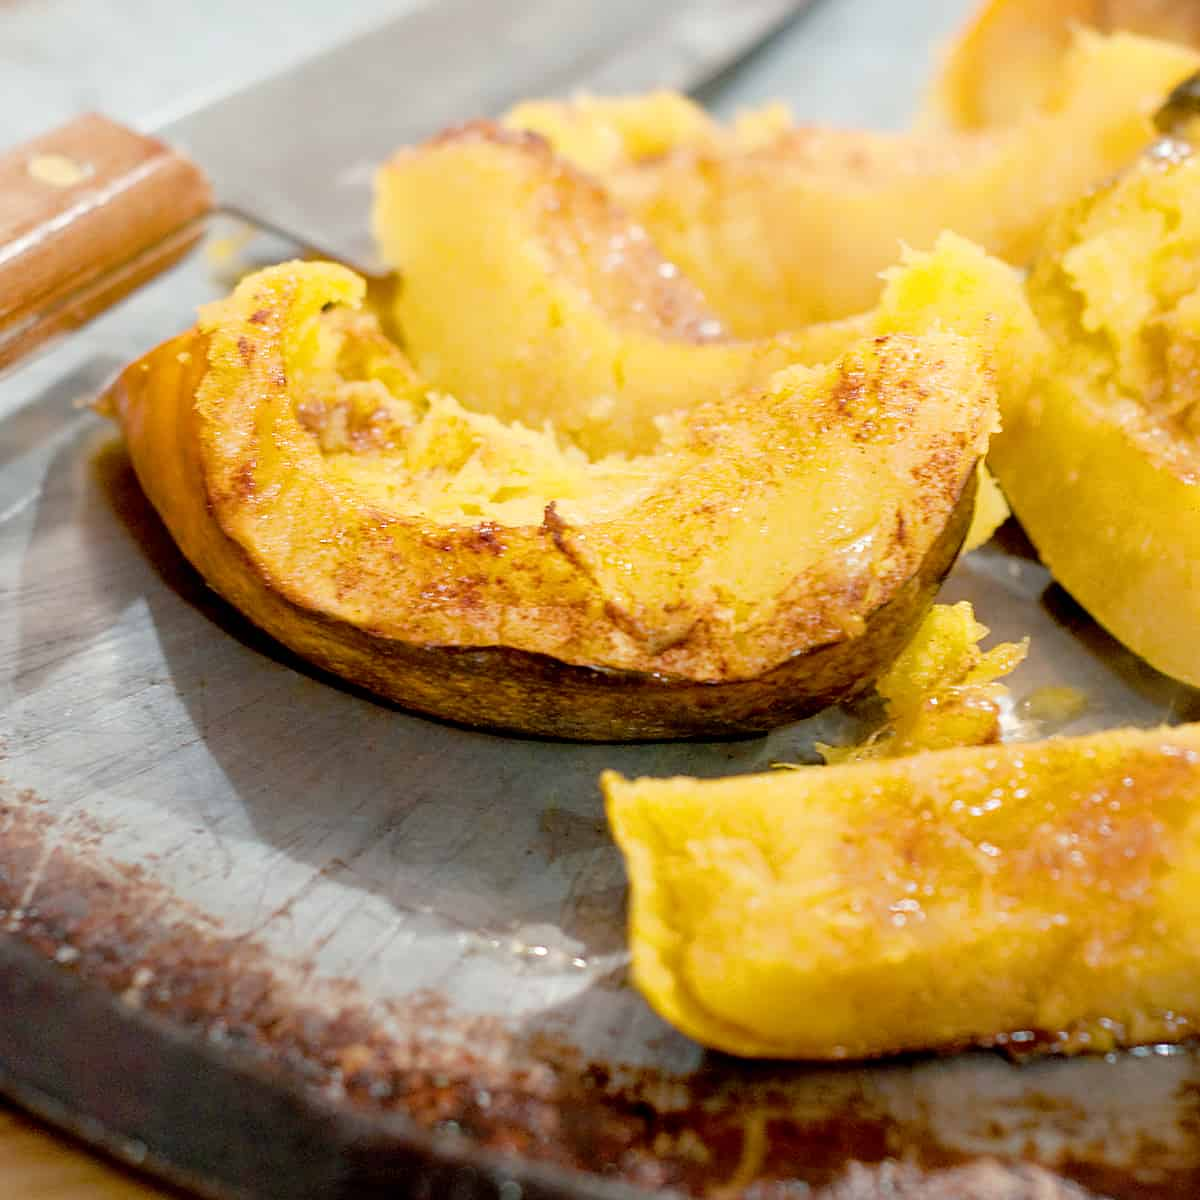 Baked Acorn Squash on a baking sheet with a chef's knife in the background.